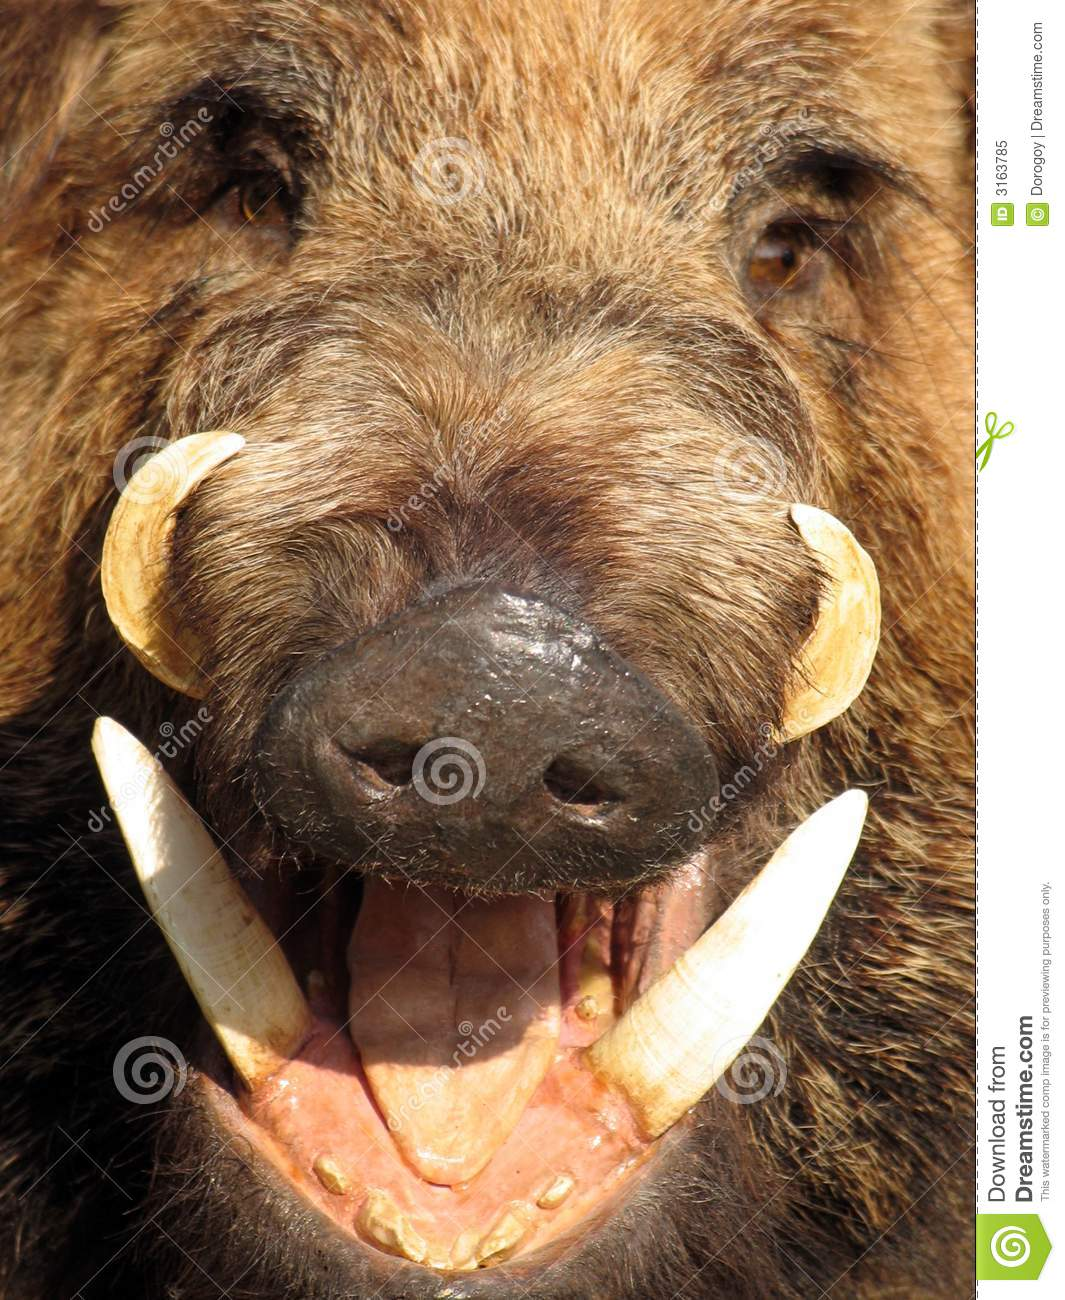 Boar Closeup Royalty Free Stock Photo - Image: 3163785